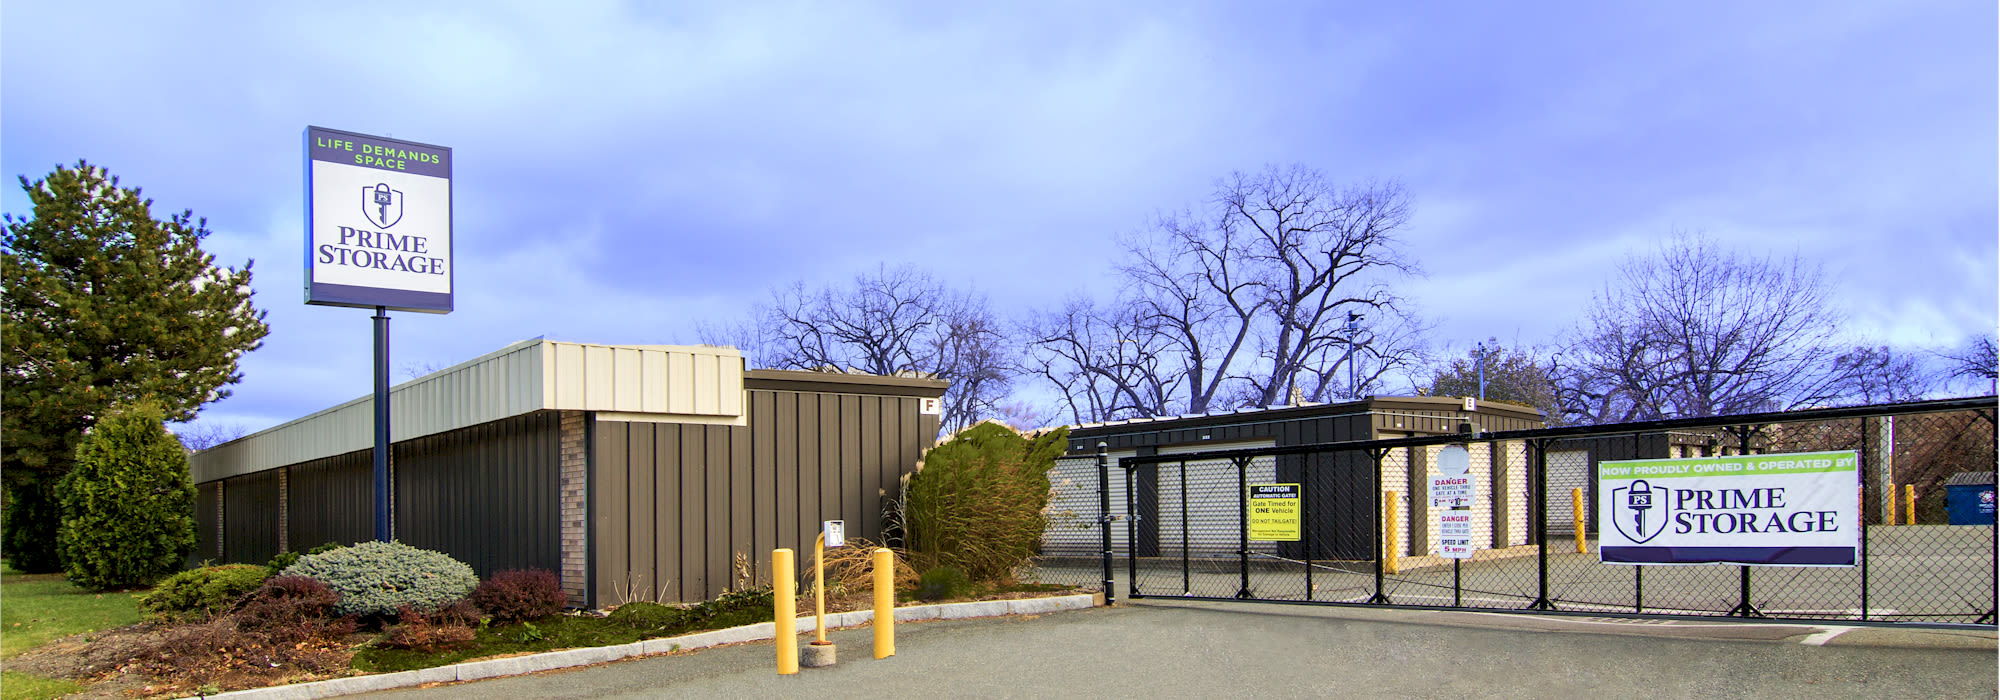 Prime Storage in Green Island, NY